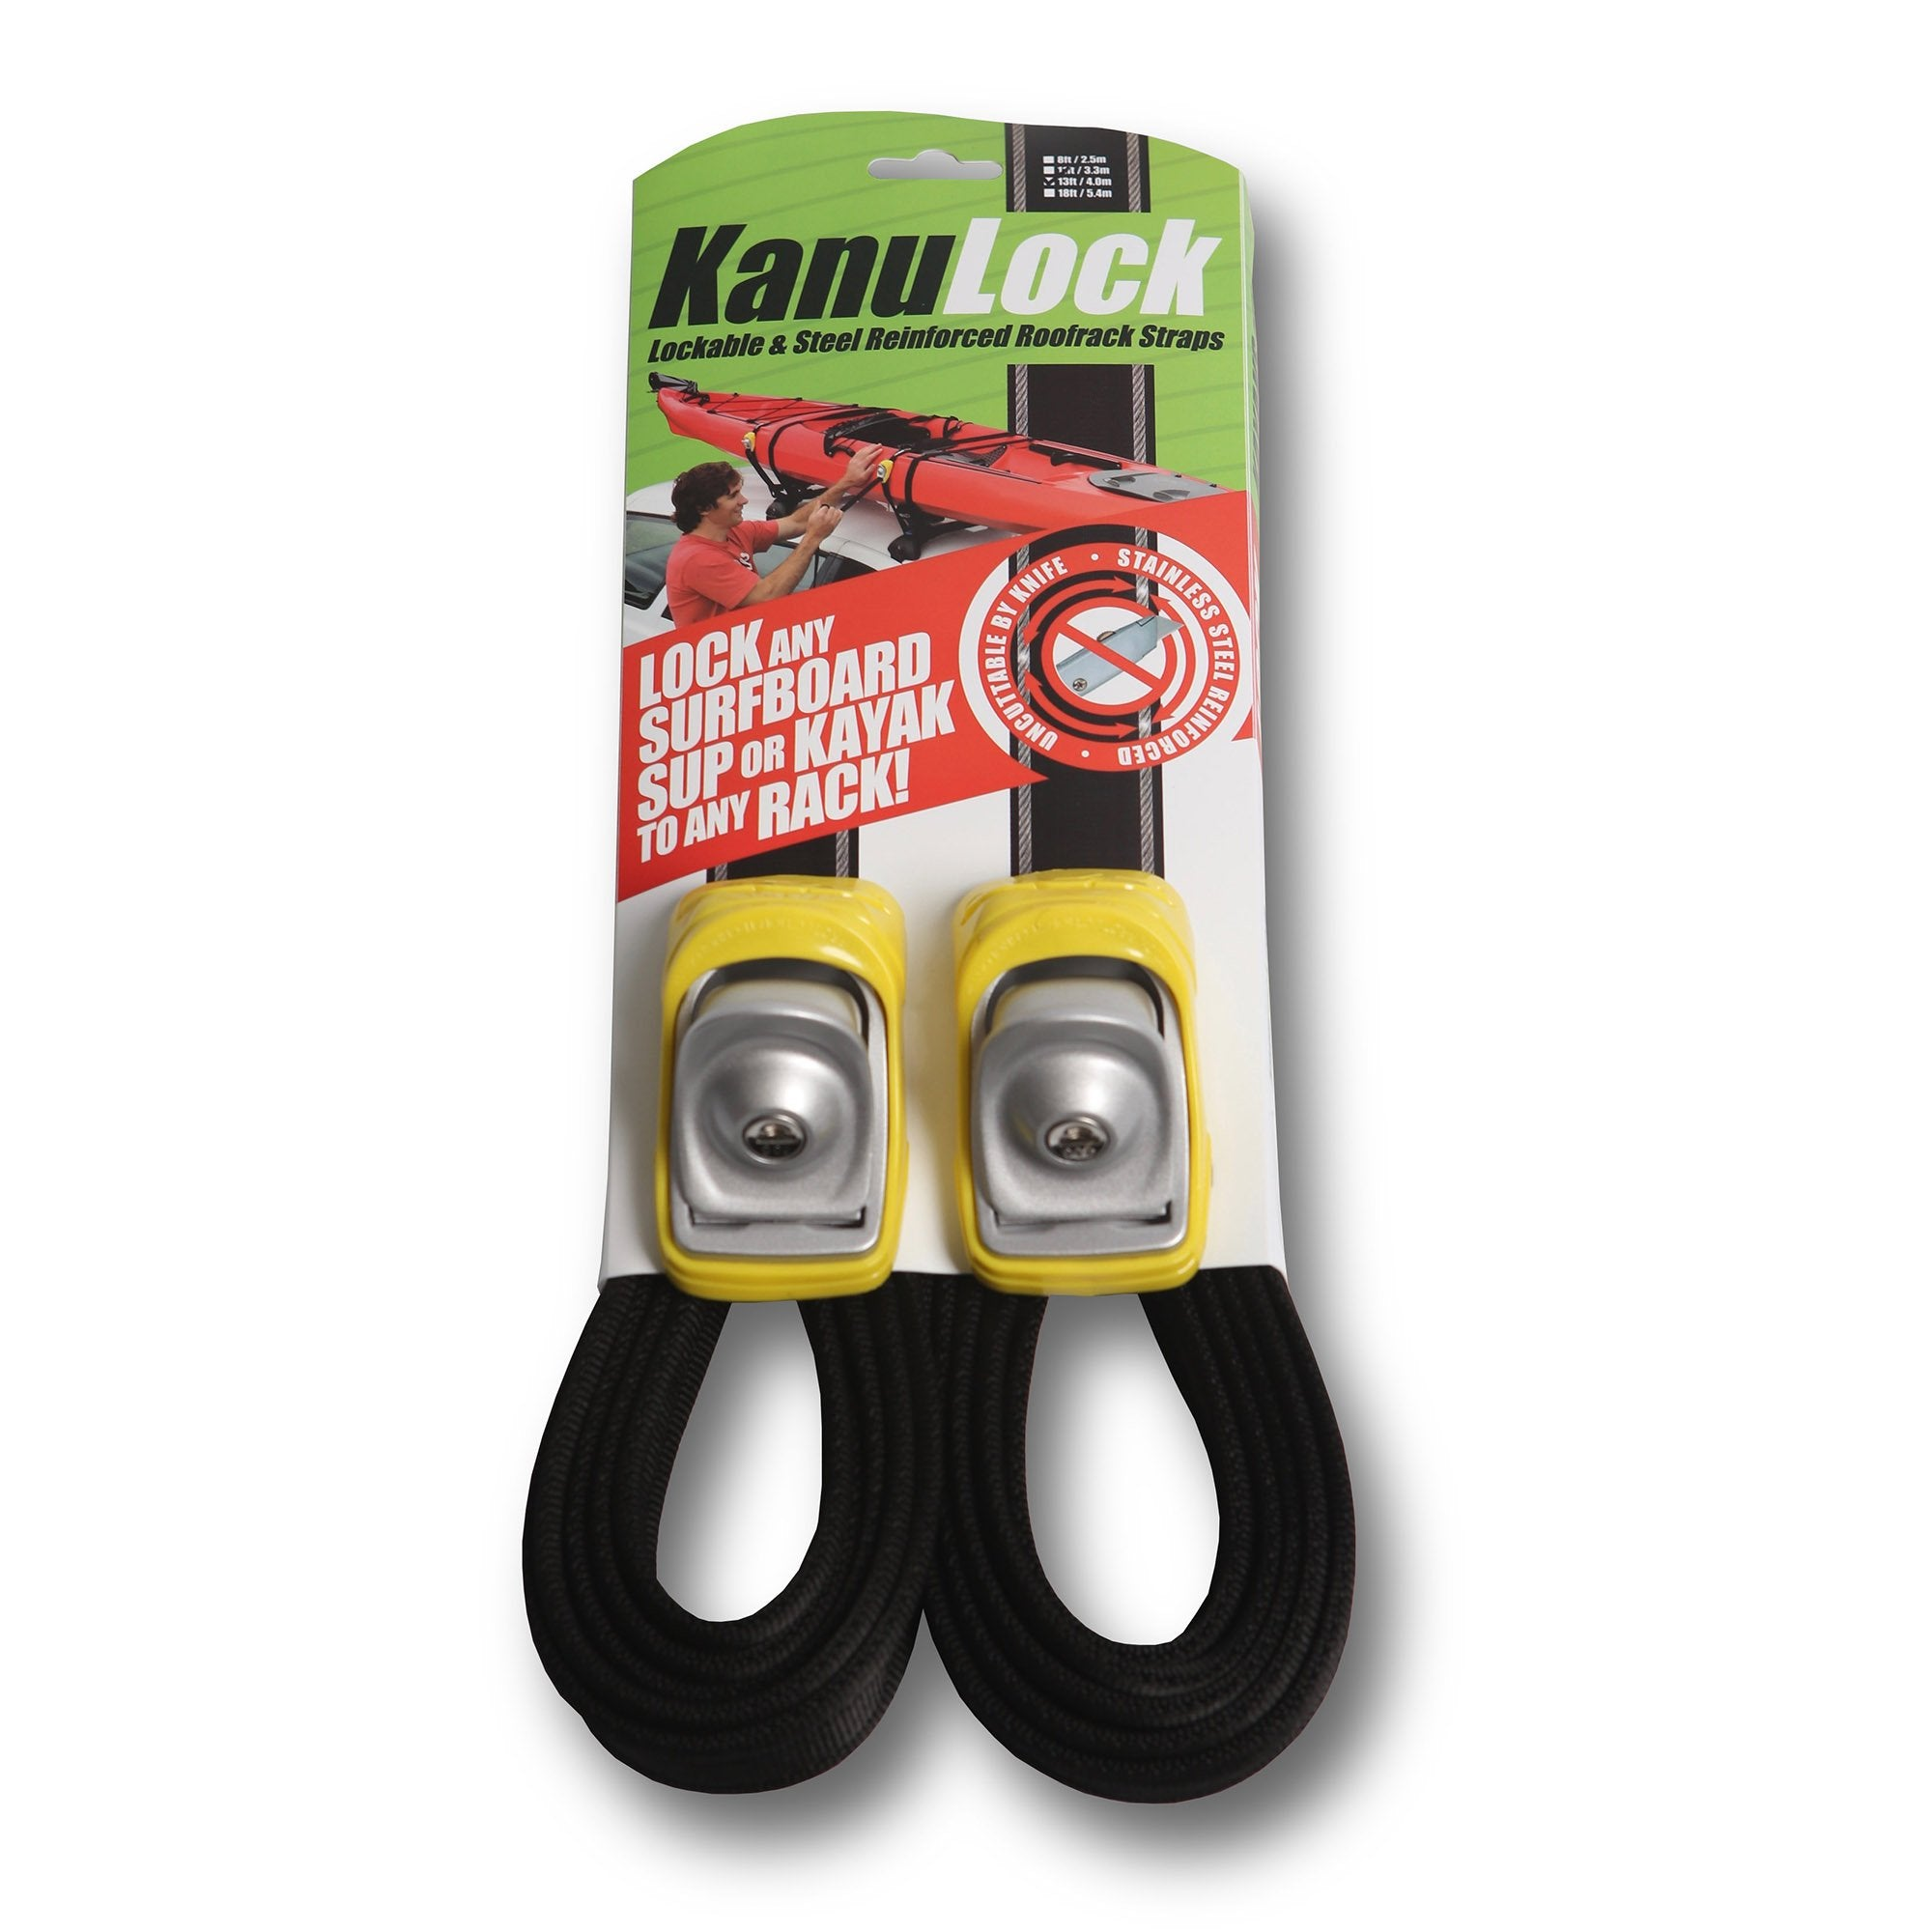 KanuLock Lockable Tie Down Straps - 13'